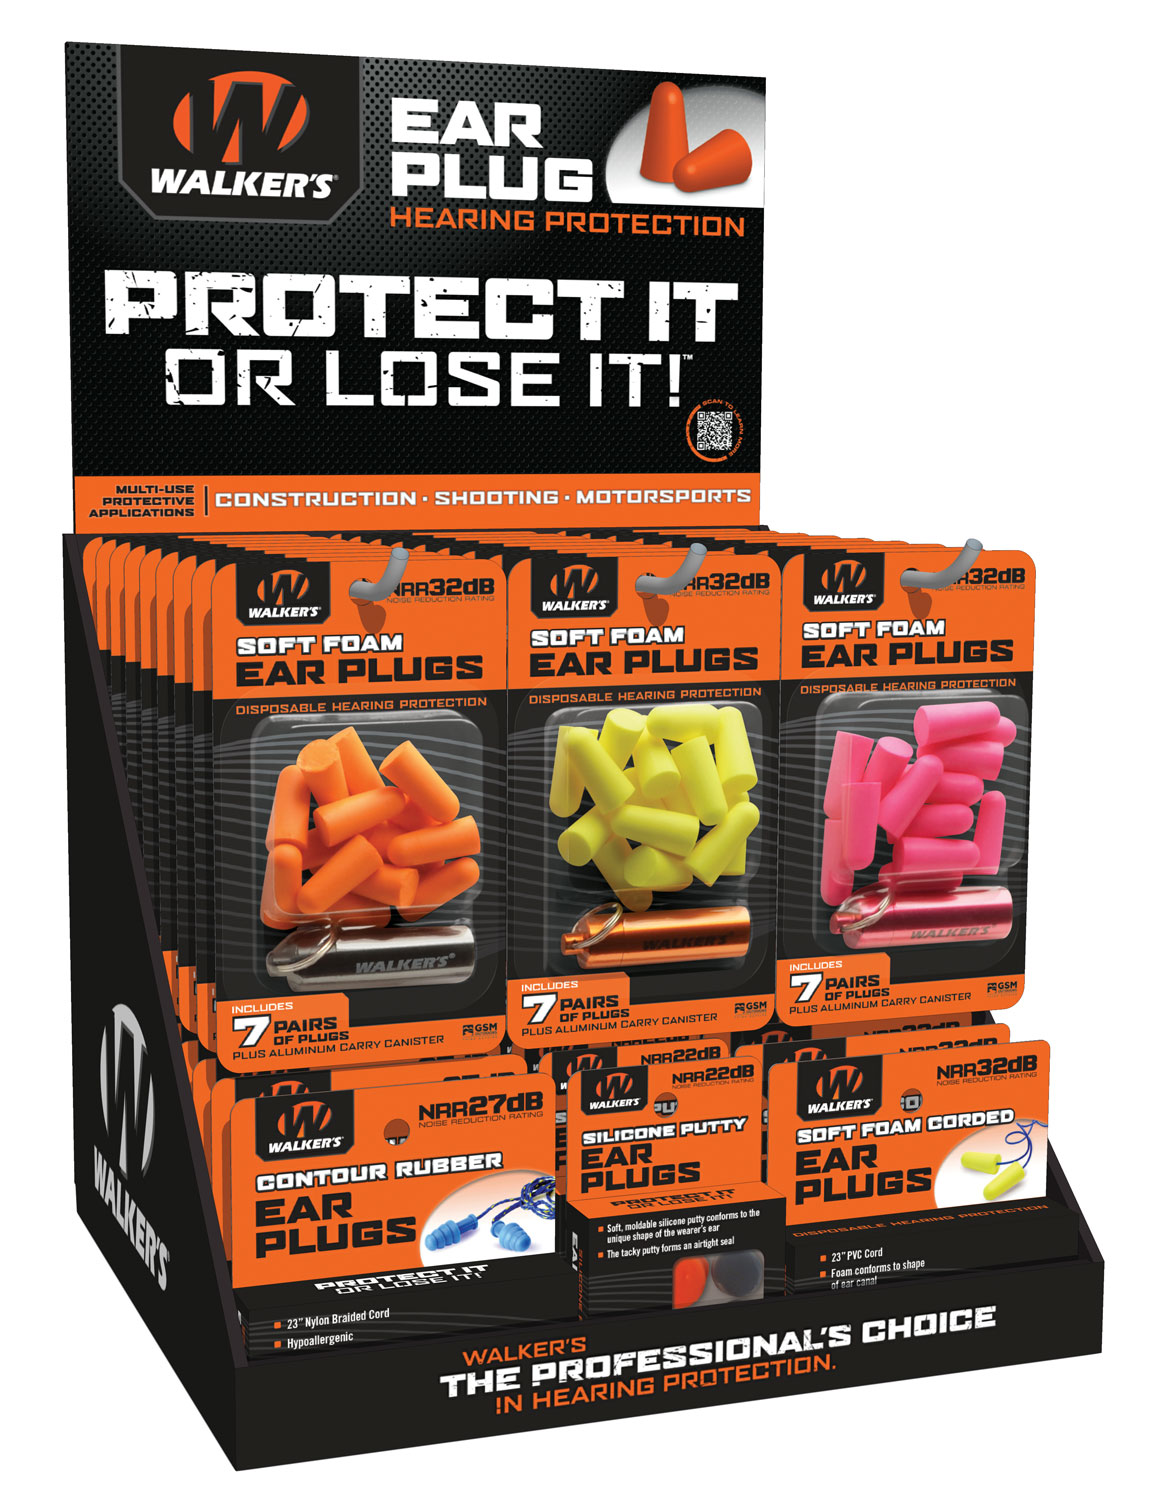 Walkers GWPPLUGDIS Foam Ear Plugs Counter Display Display w/Product 58 Pieces Counter Top